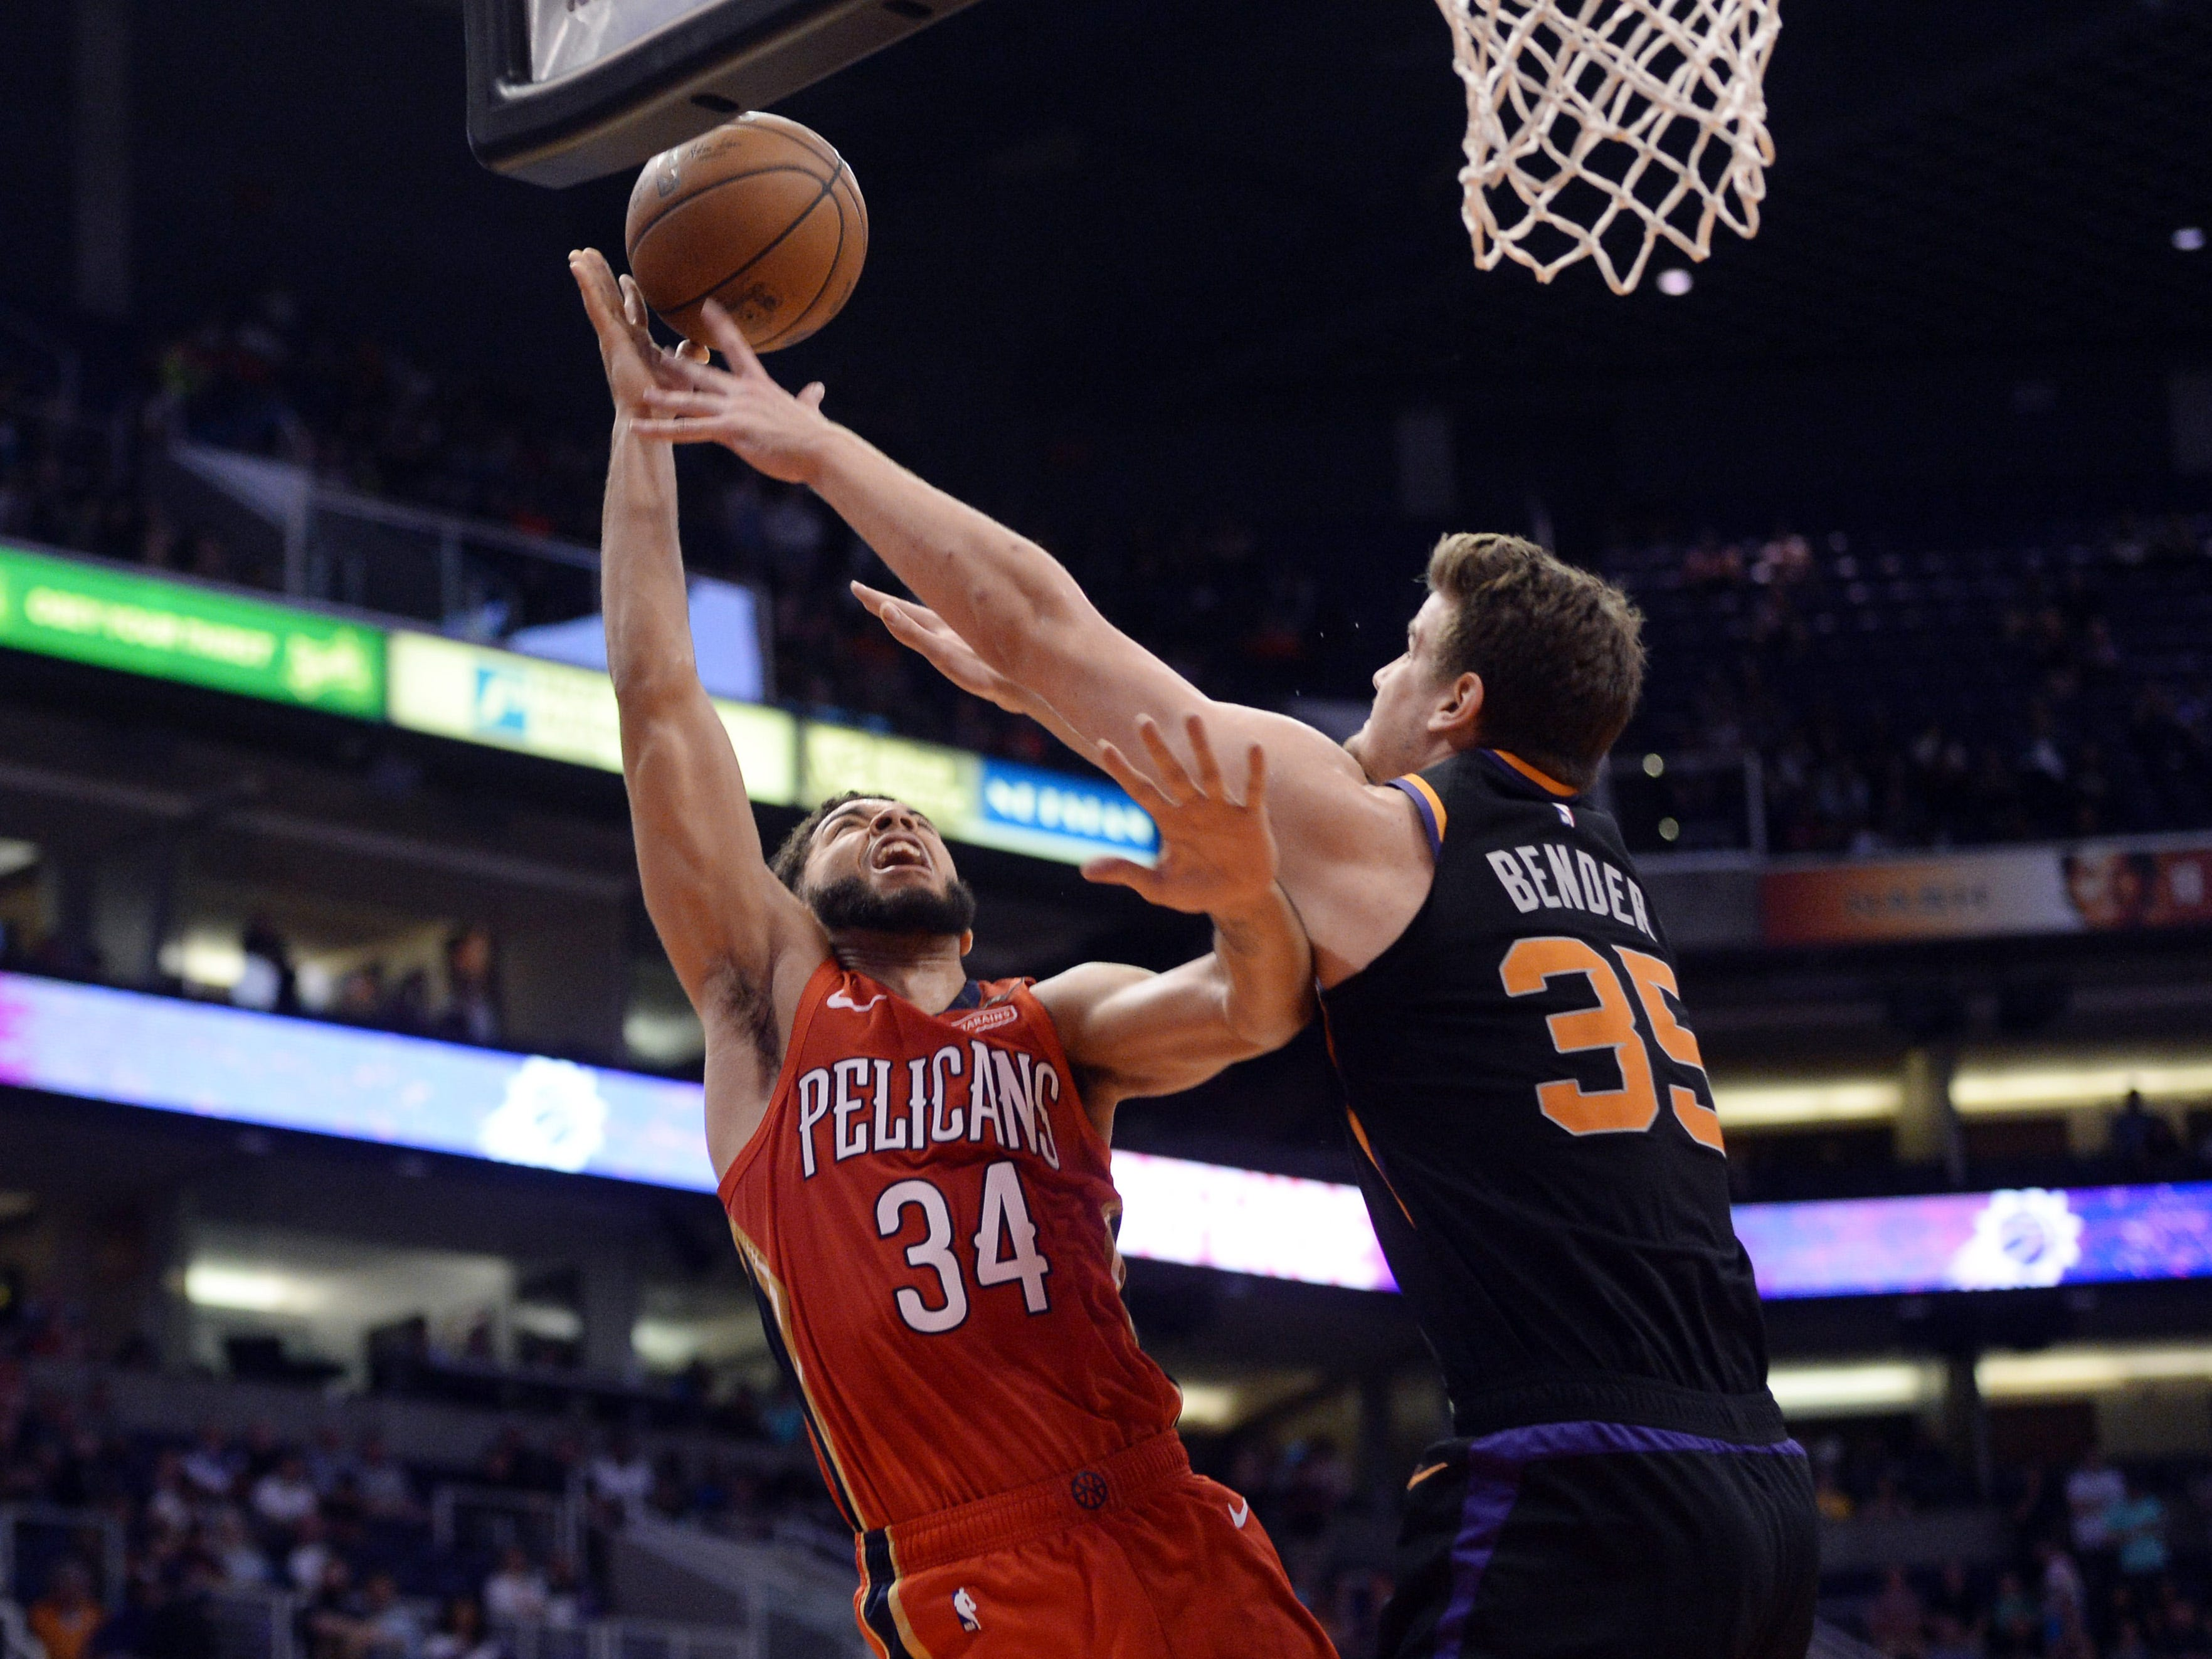 Apr 5, 2019; Phoenix, AZ, USA; Phoenix Suns forward Dragan Bender (35) blocks a shot attempt by New Orleans Pelicans guard Kenrich Williams (34) during the overtime session at Talking Stick Resort Arena. Mandatory Credit: Joe Camporeale-USA TODAY Sports